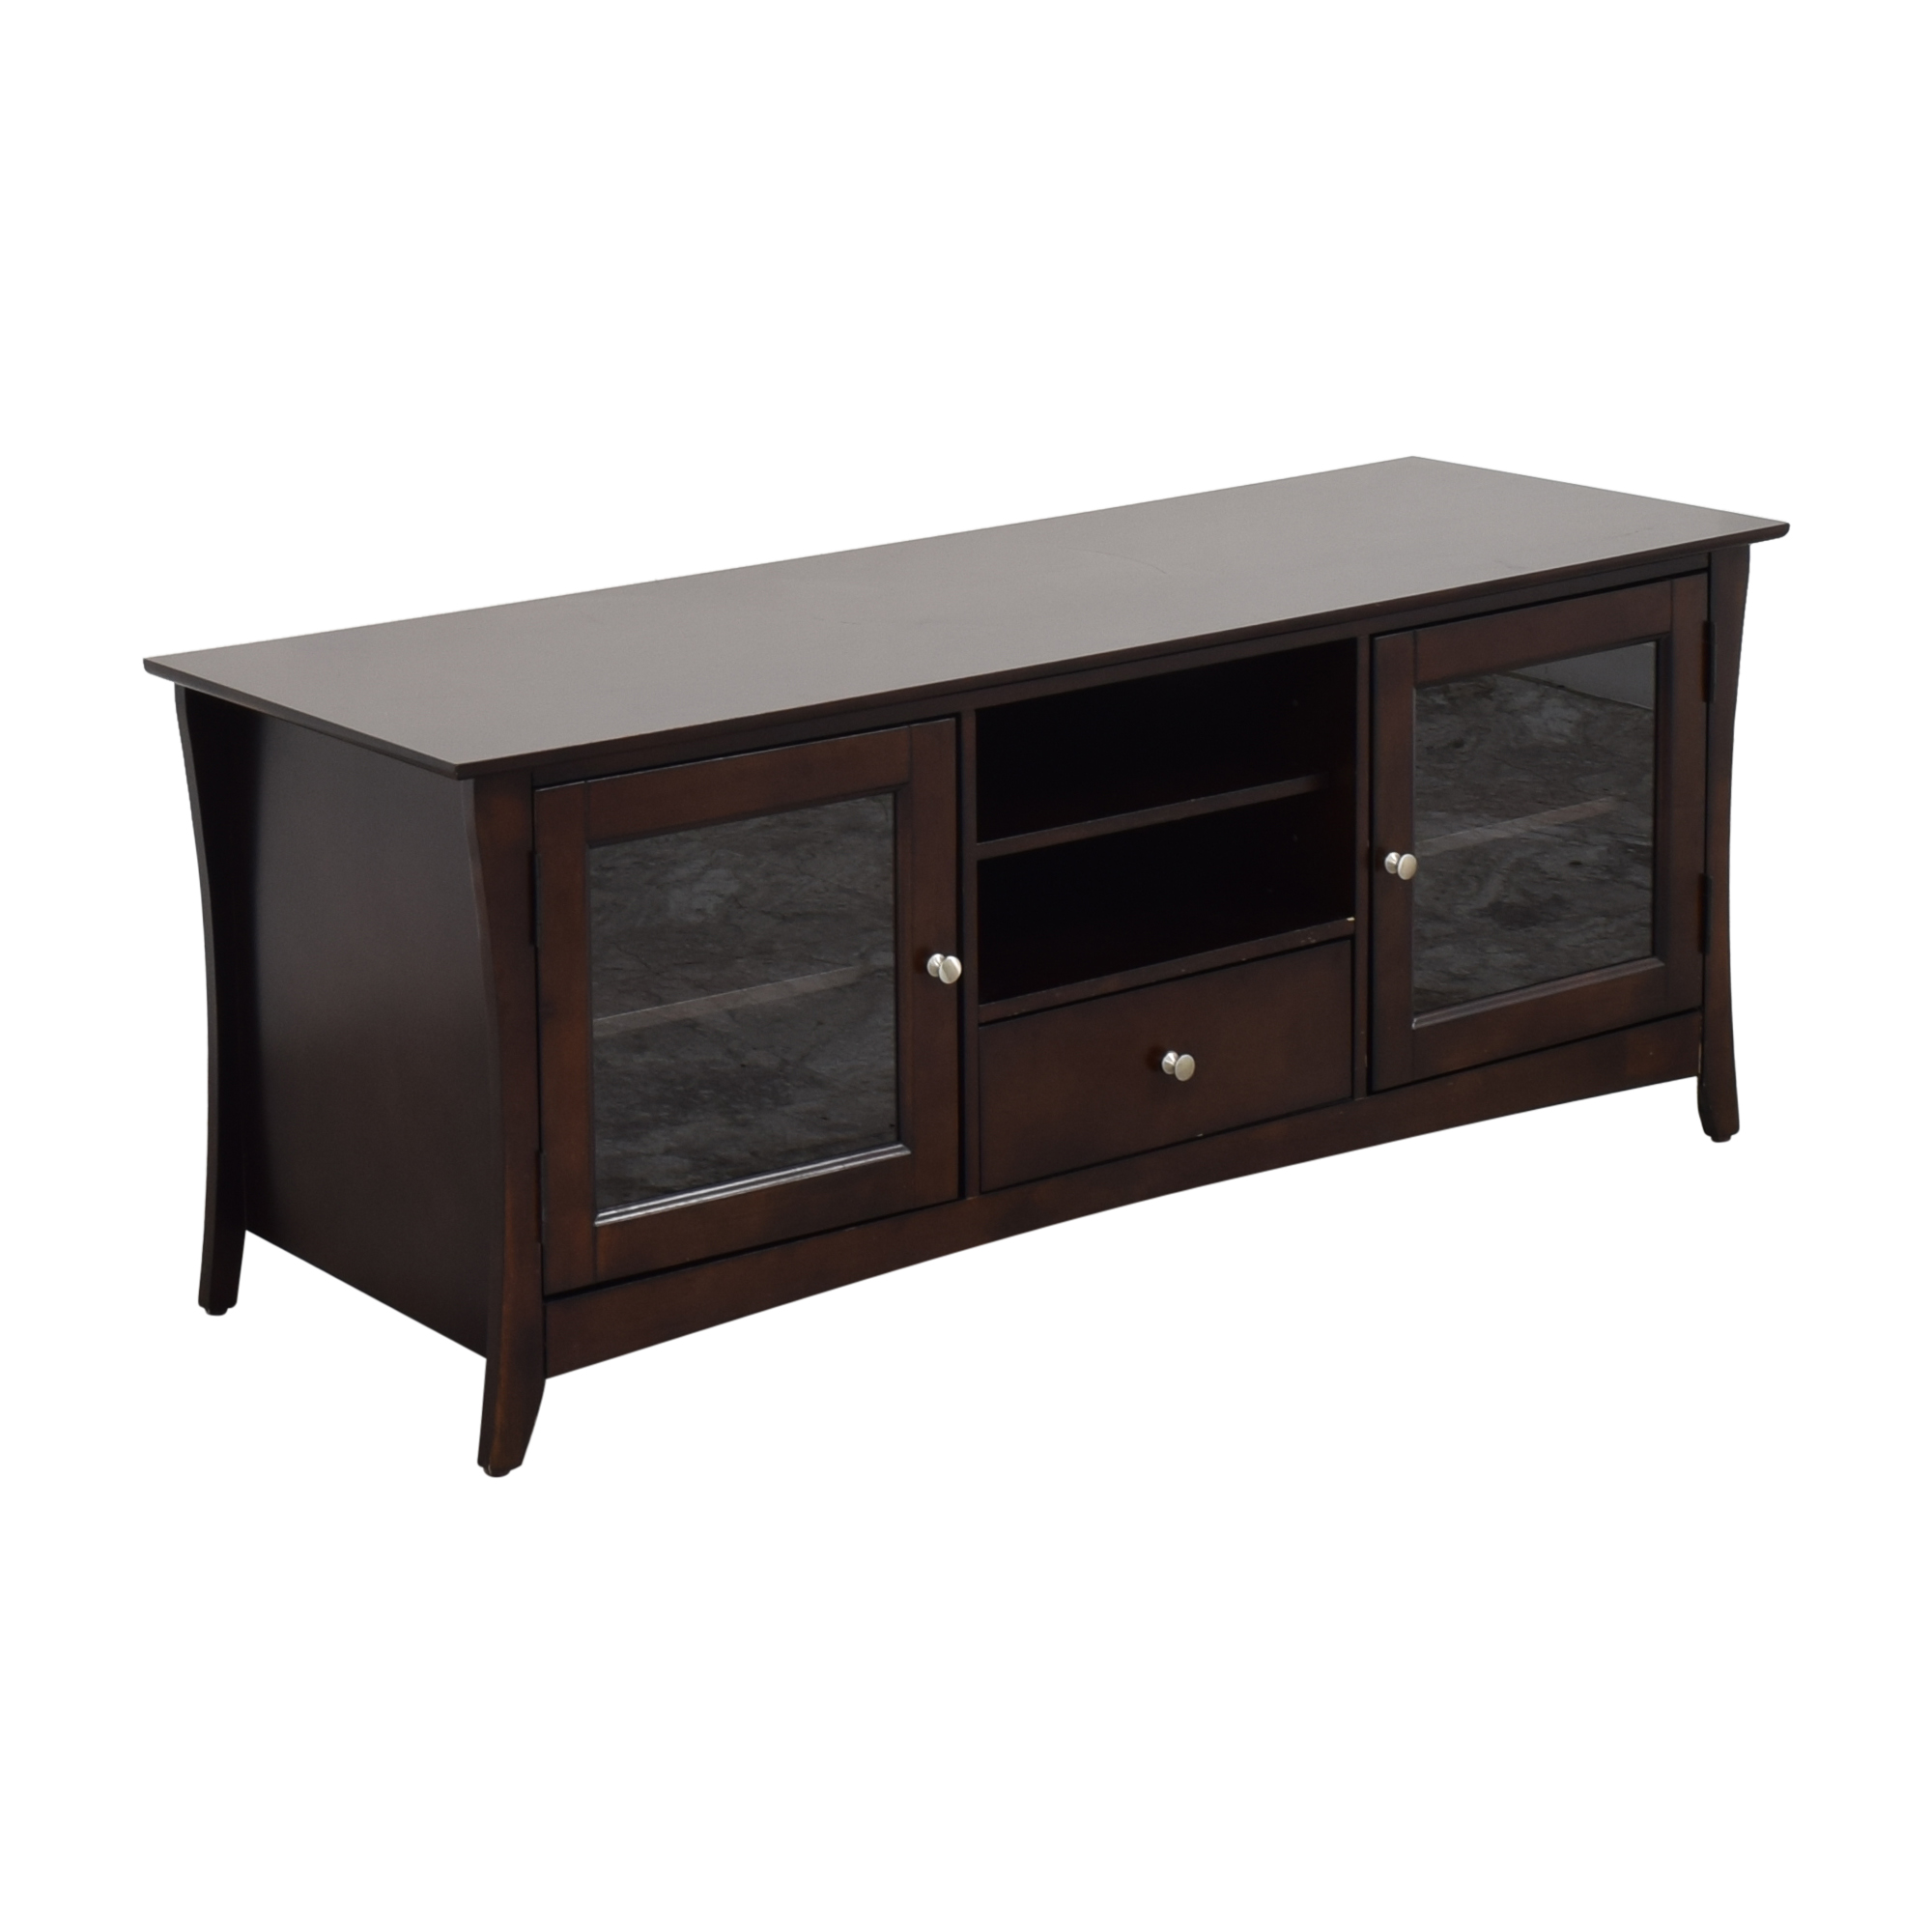 Homelegance Furniture Homelegance Borgeois TV Stand discount